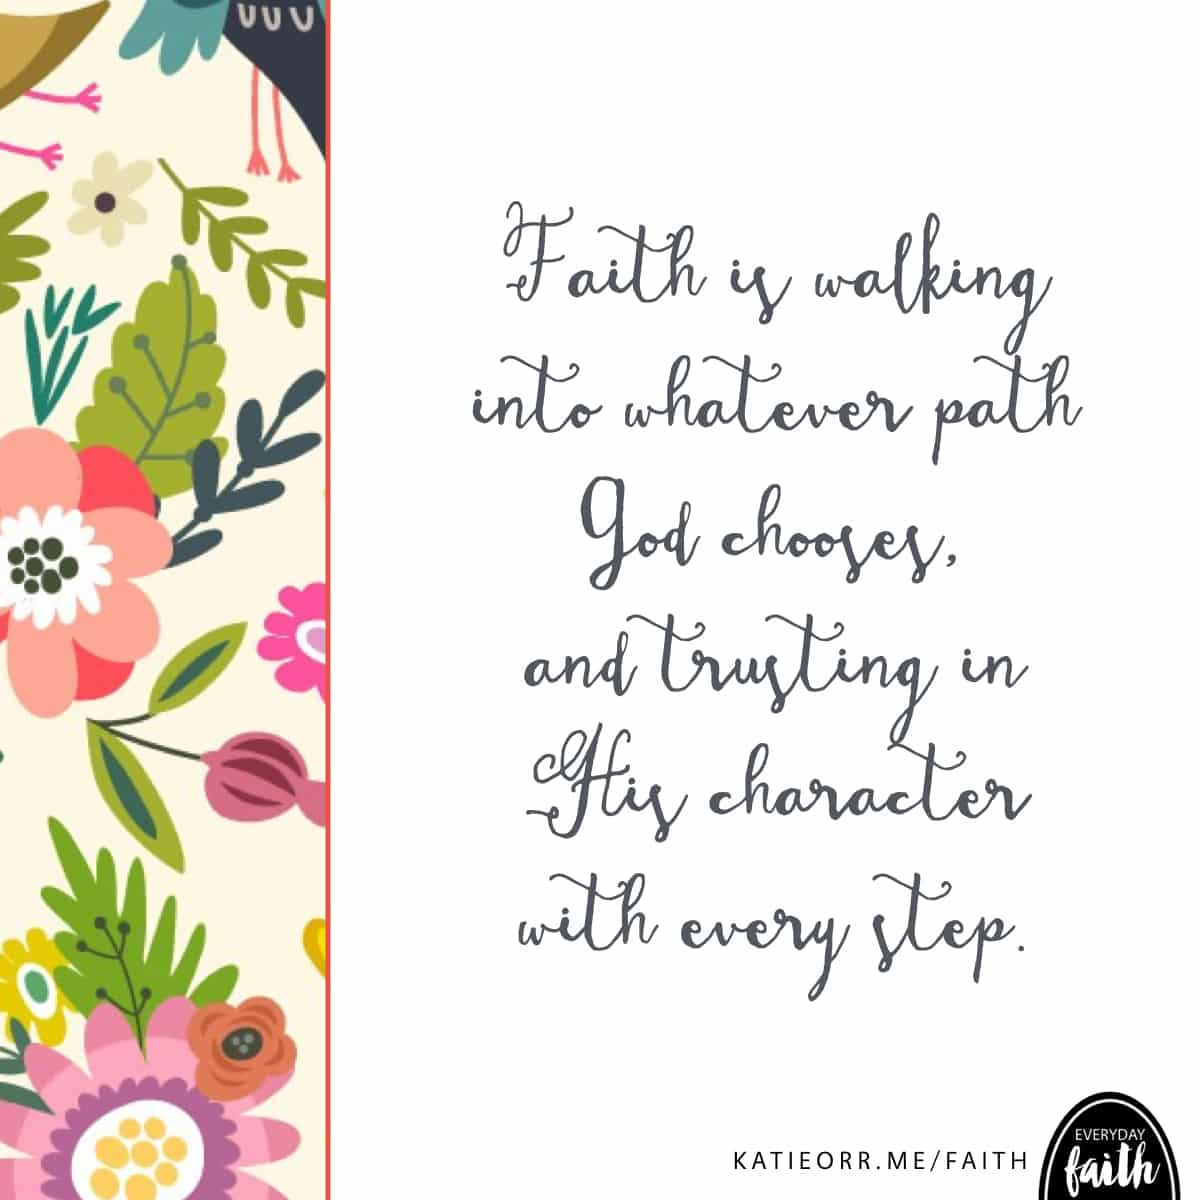 faith is walking down the path God choses for me